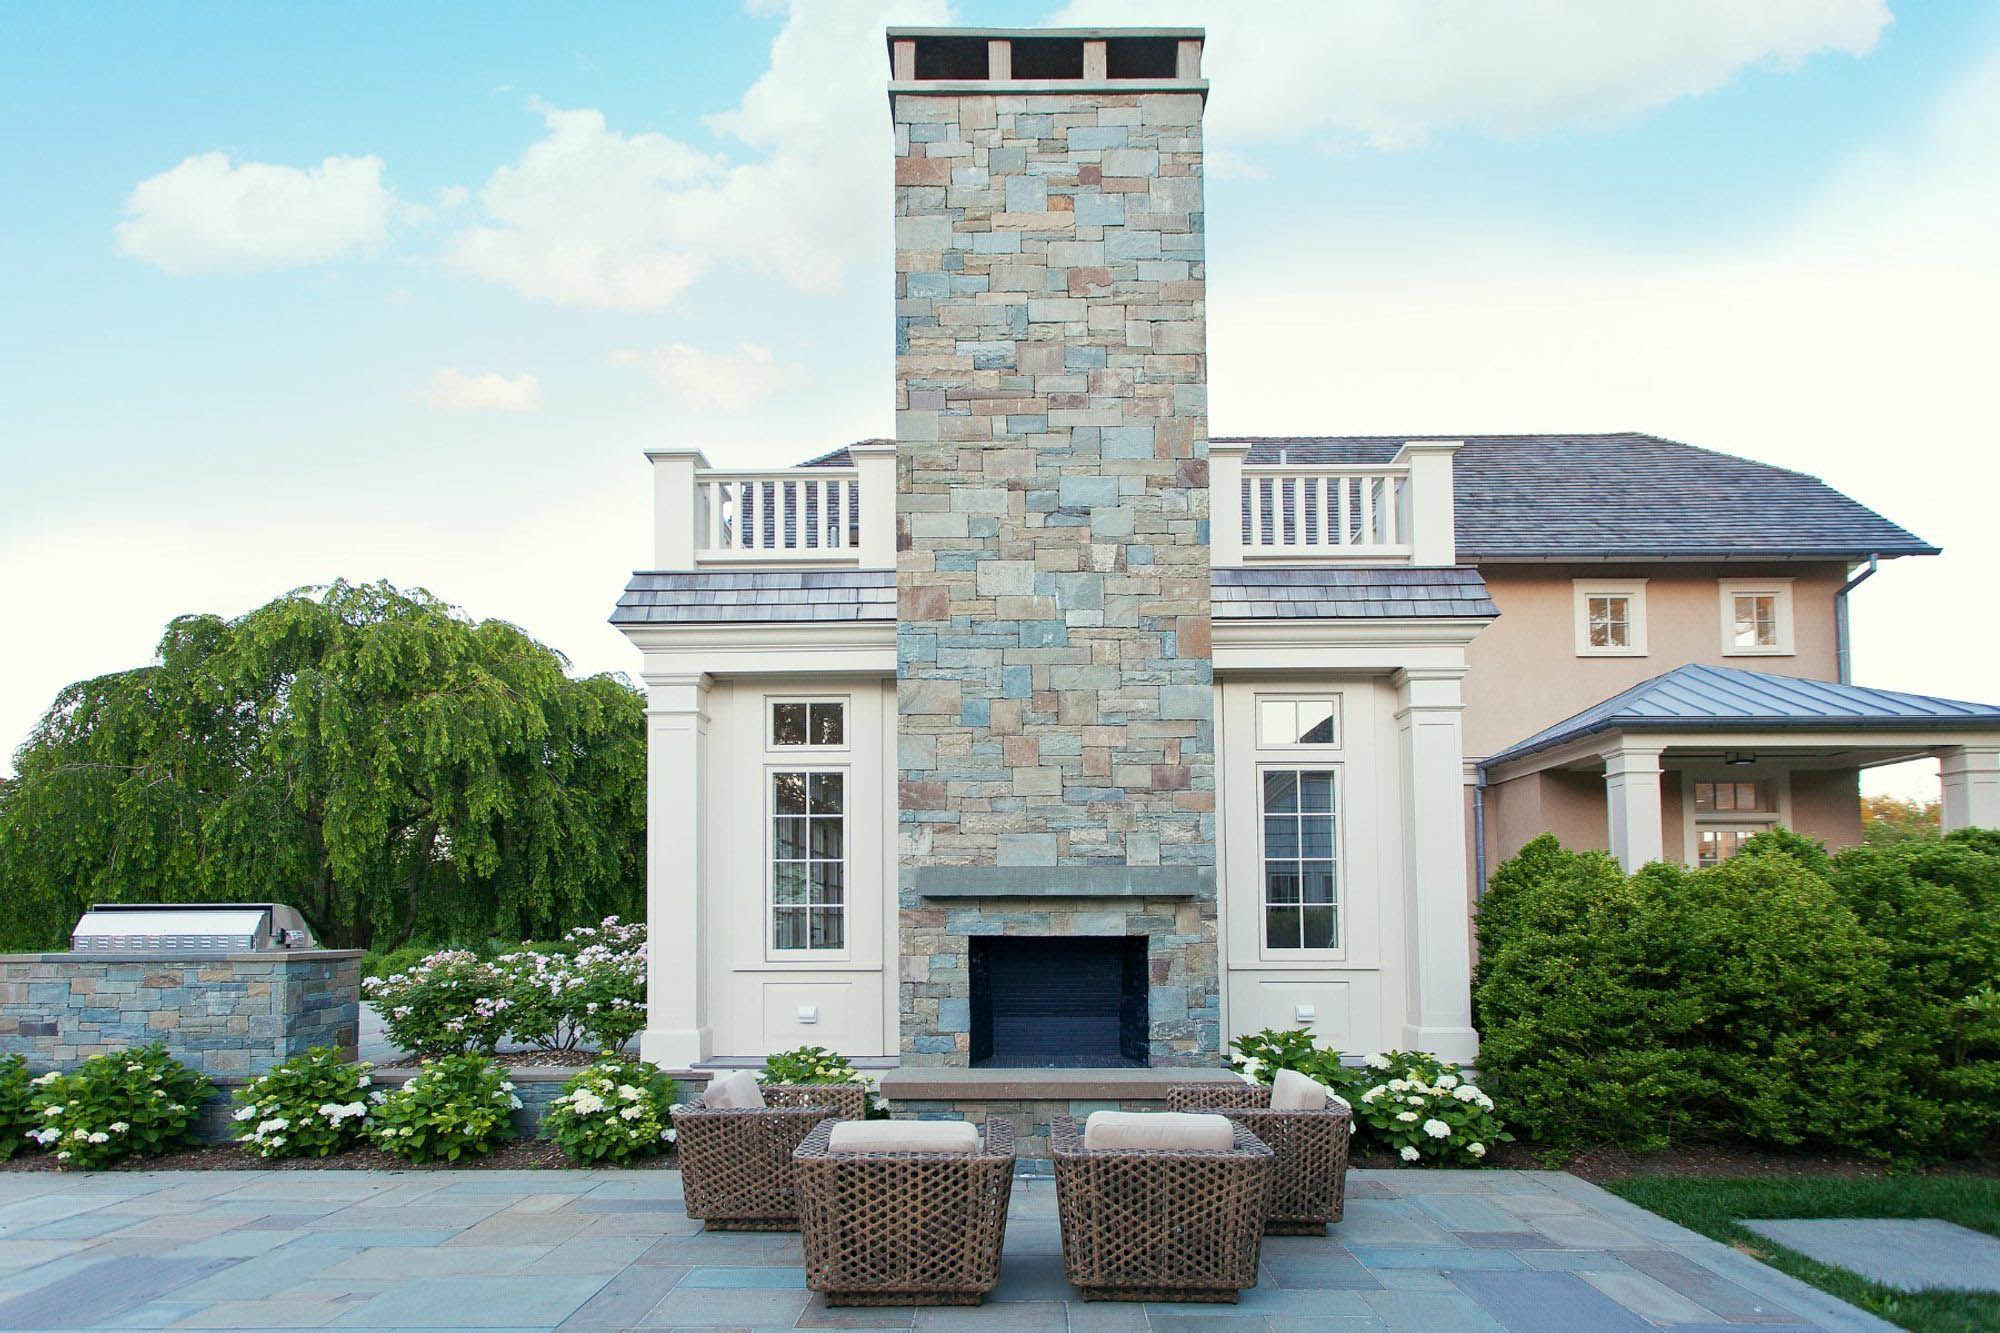 beautiful small wicker patio furniture set in front of a gas fireplace with stunning real stone chimney and blue stone patio